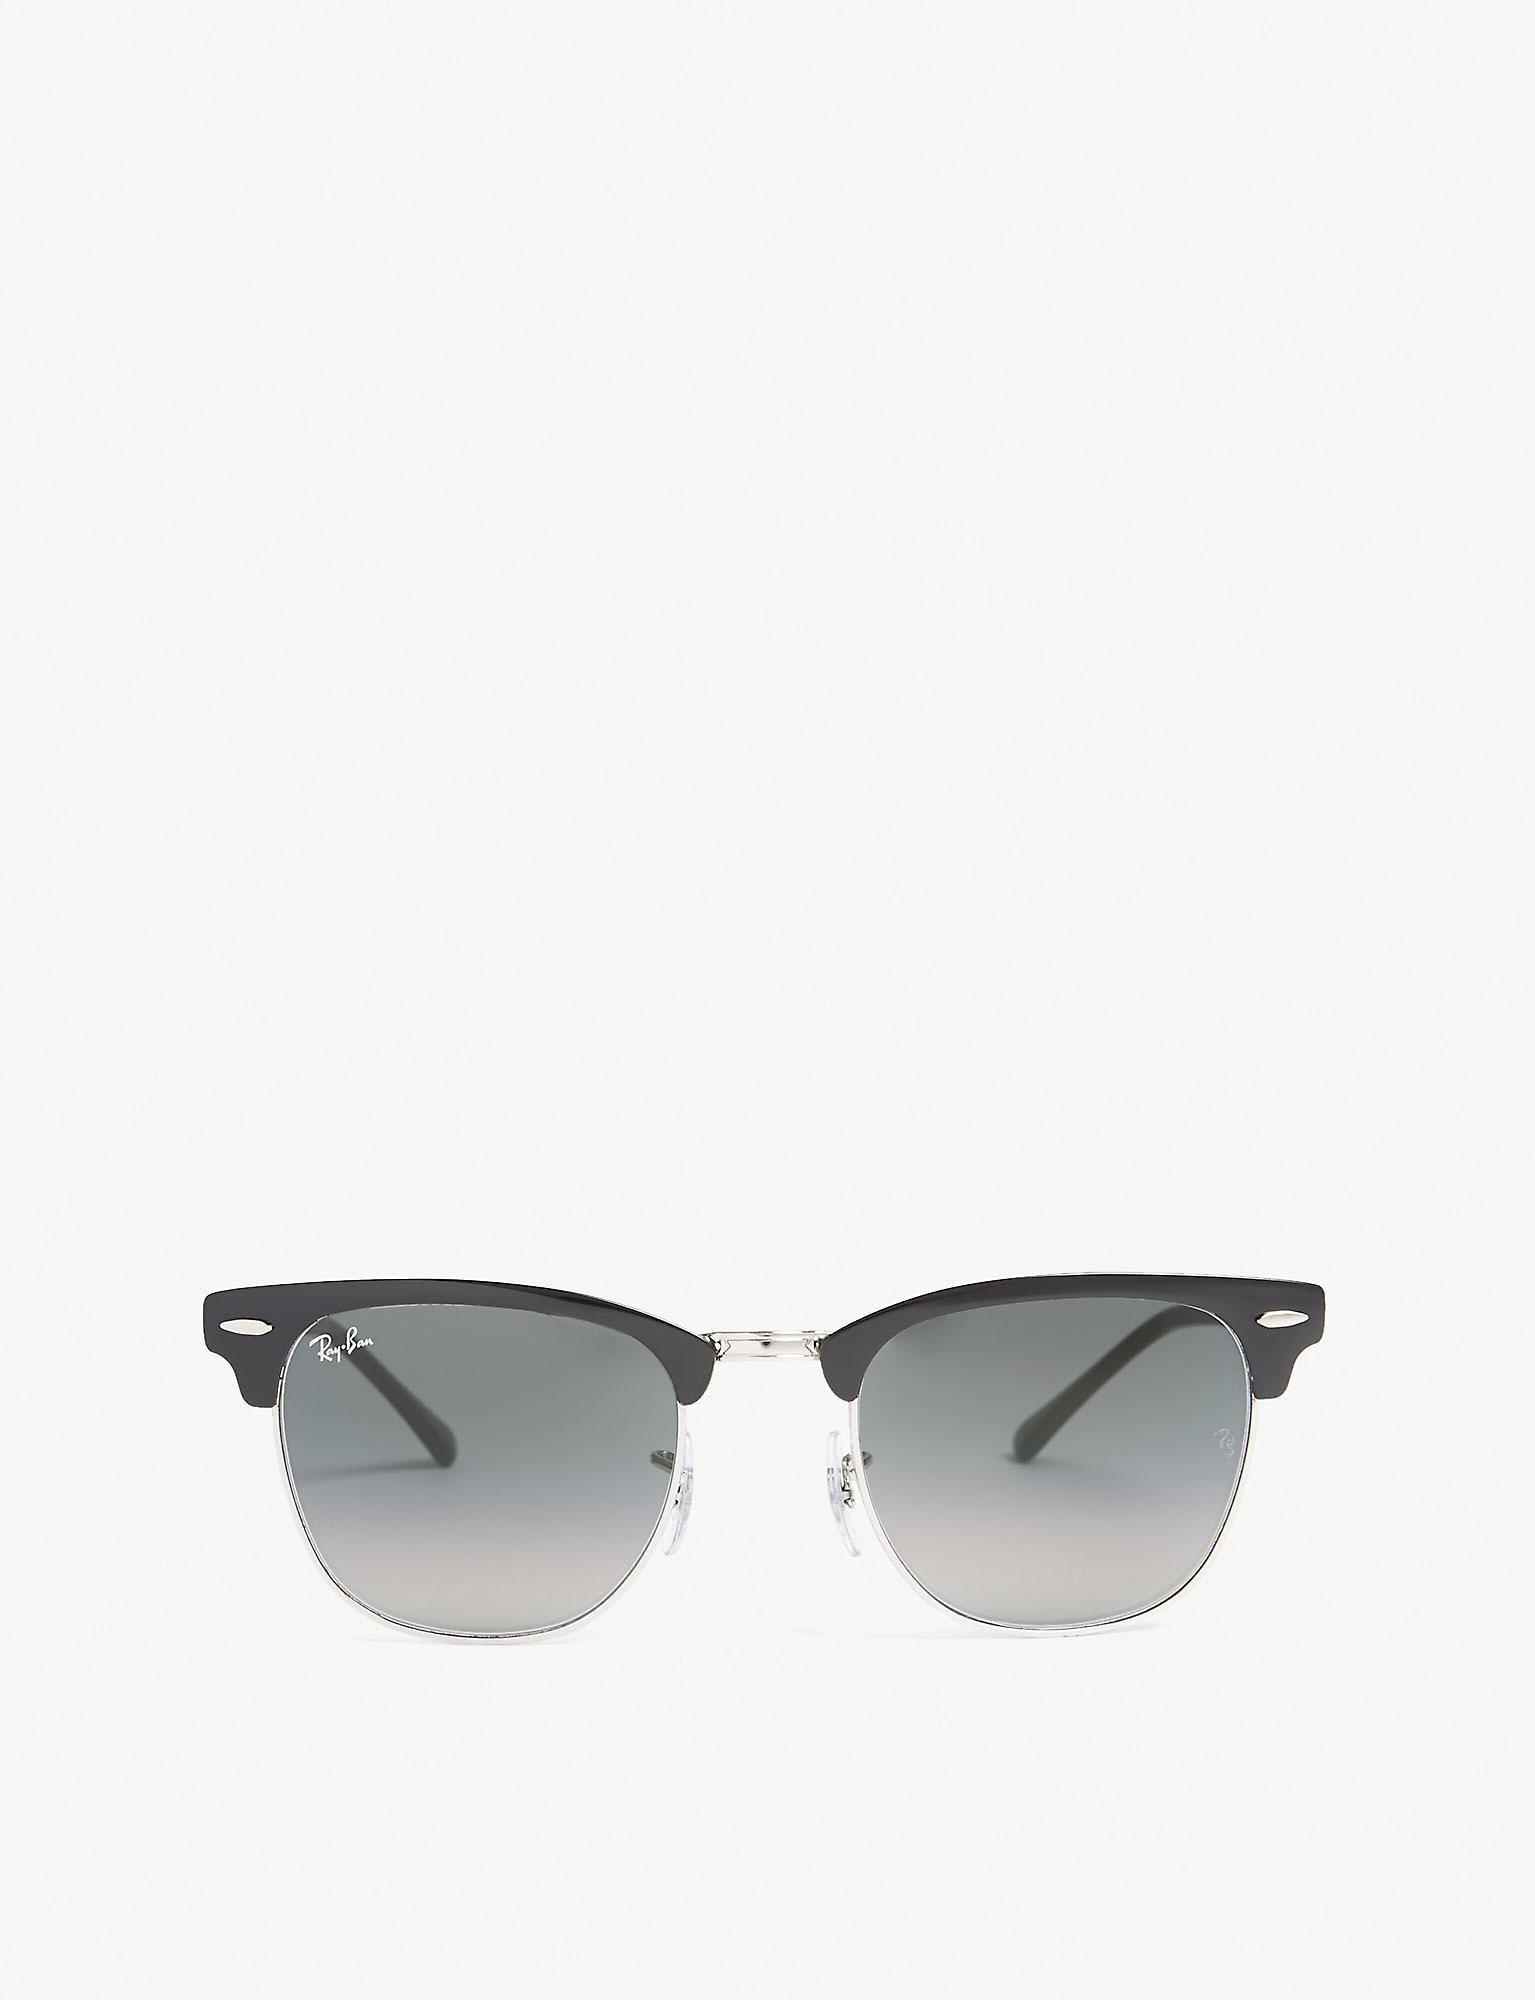 f9a40b944feef Lyst - Ray-Ban Rb3716 Square-frame Sunglasses in Black